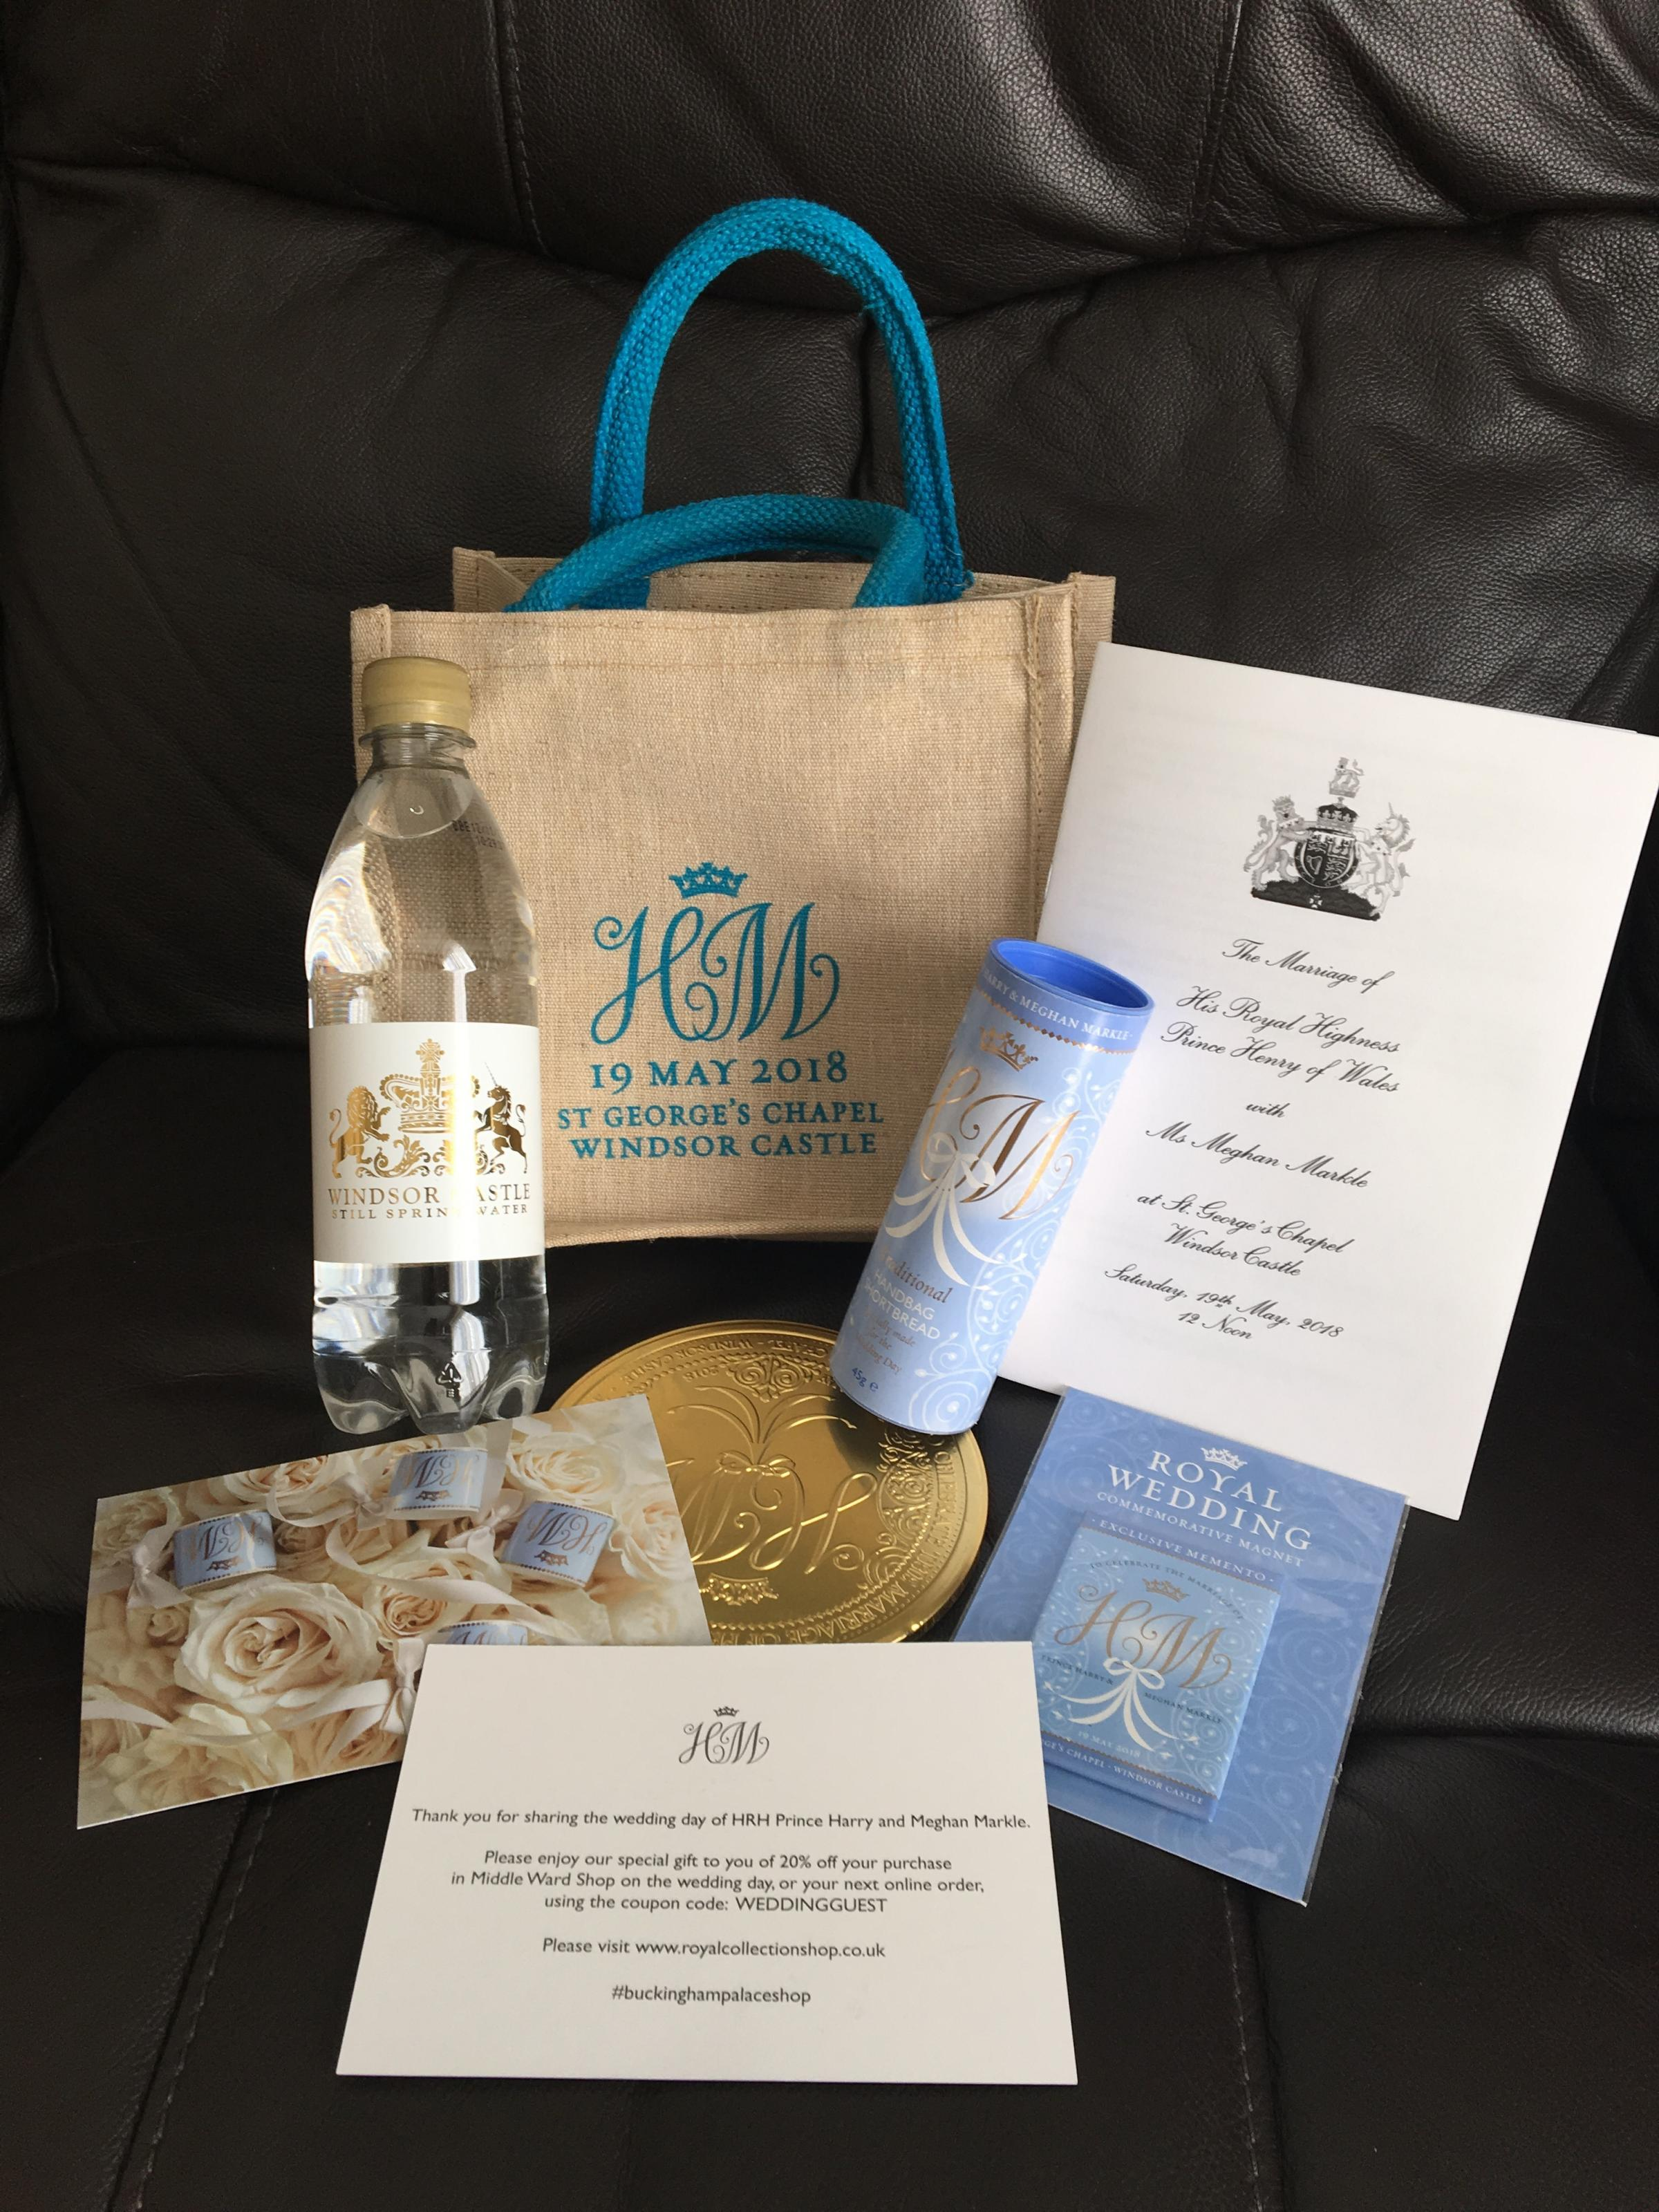 The goodie bag given to wedding guests